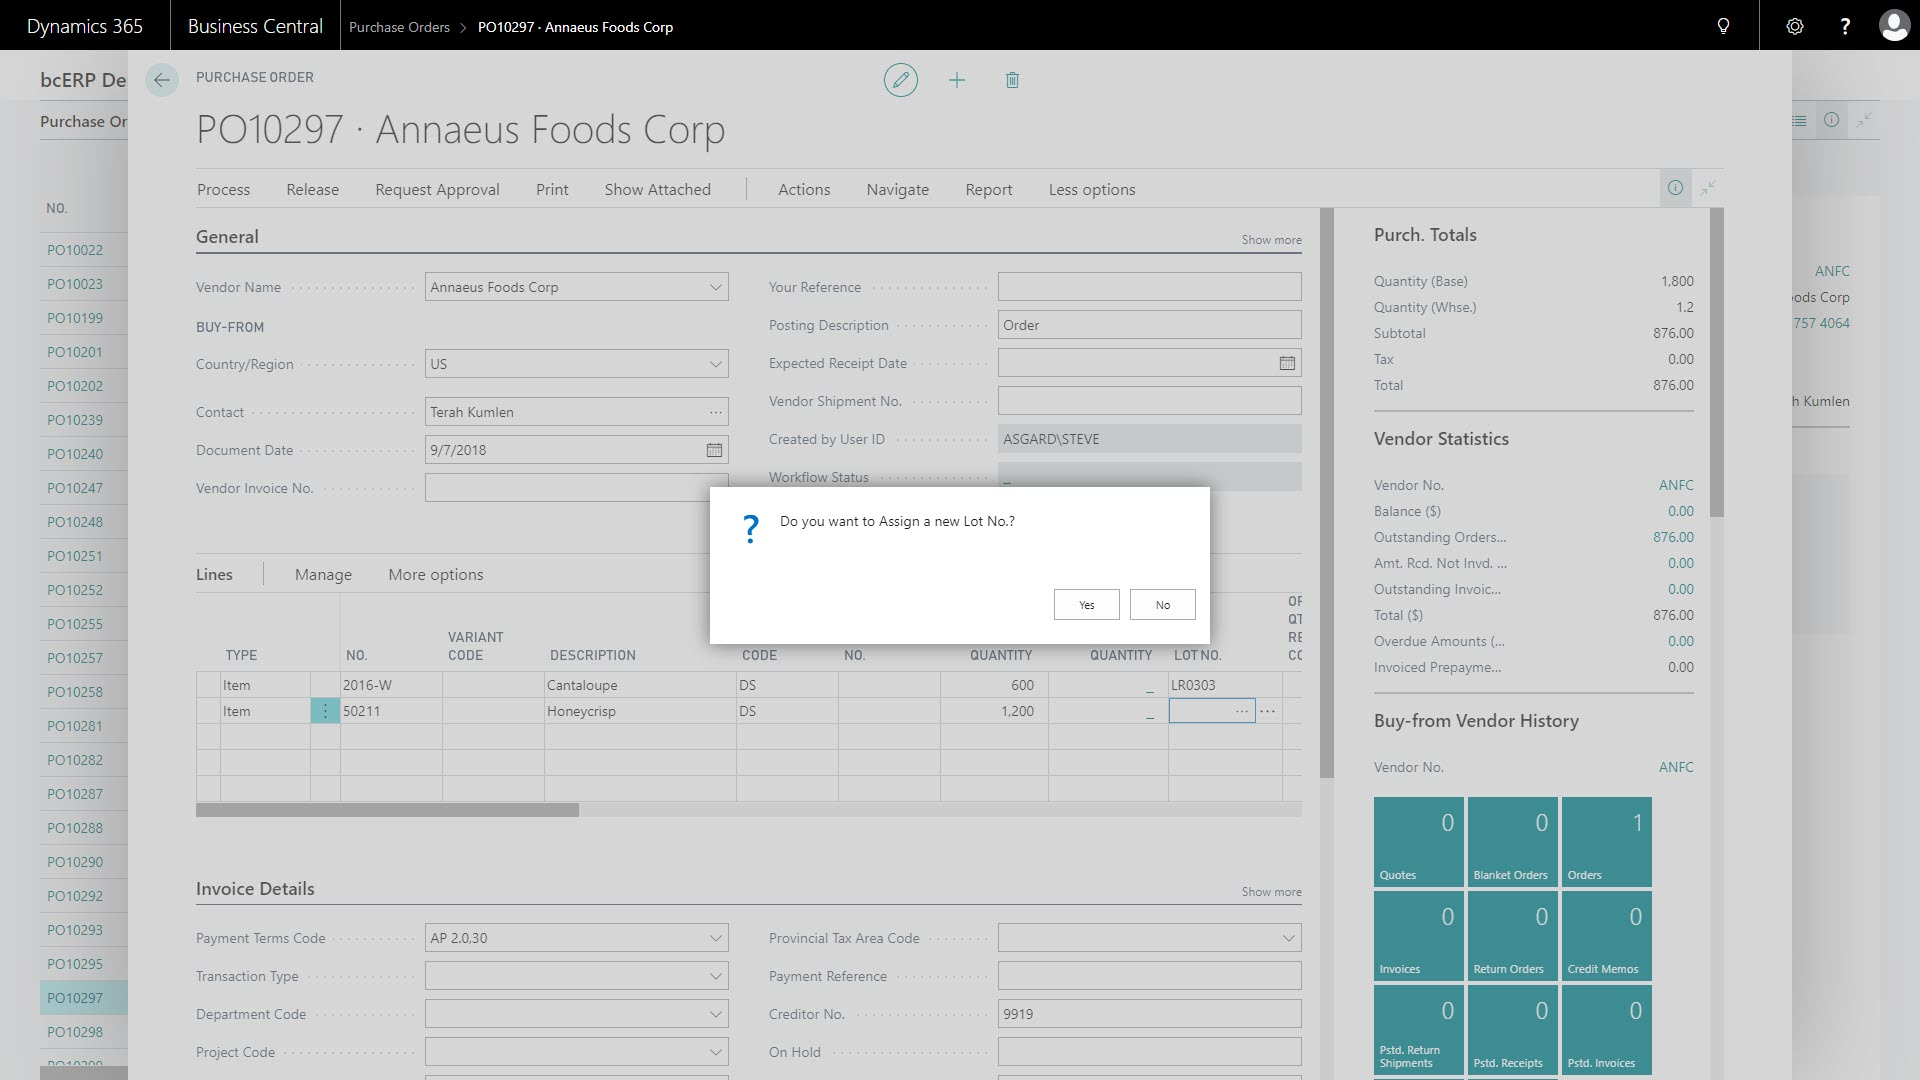 dynamics 365 lot on line feature screen shot